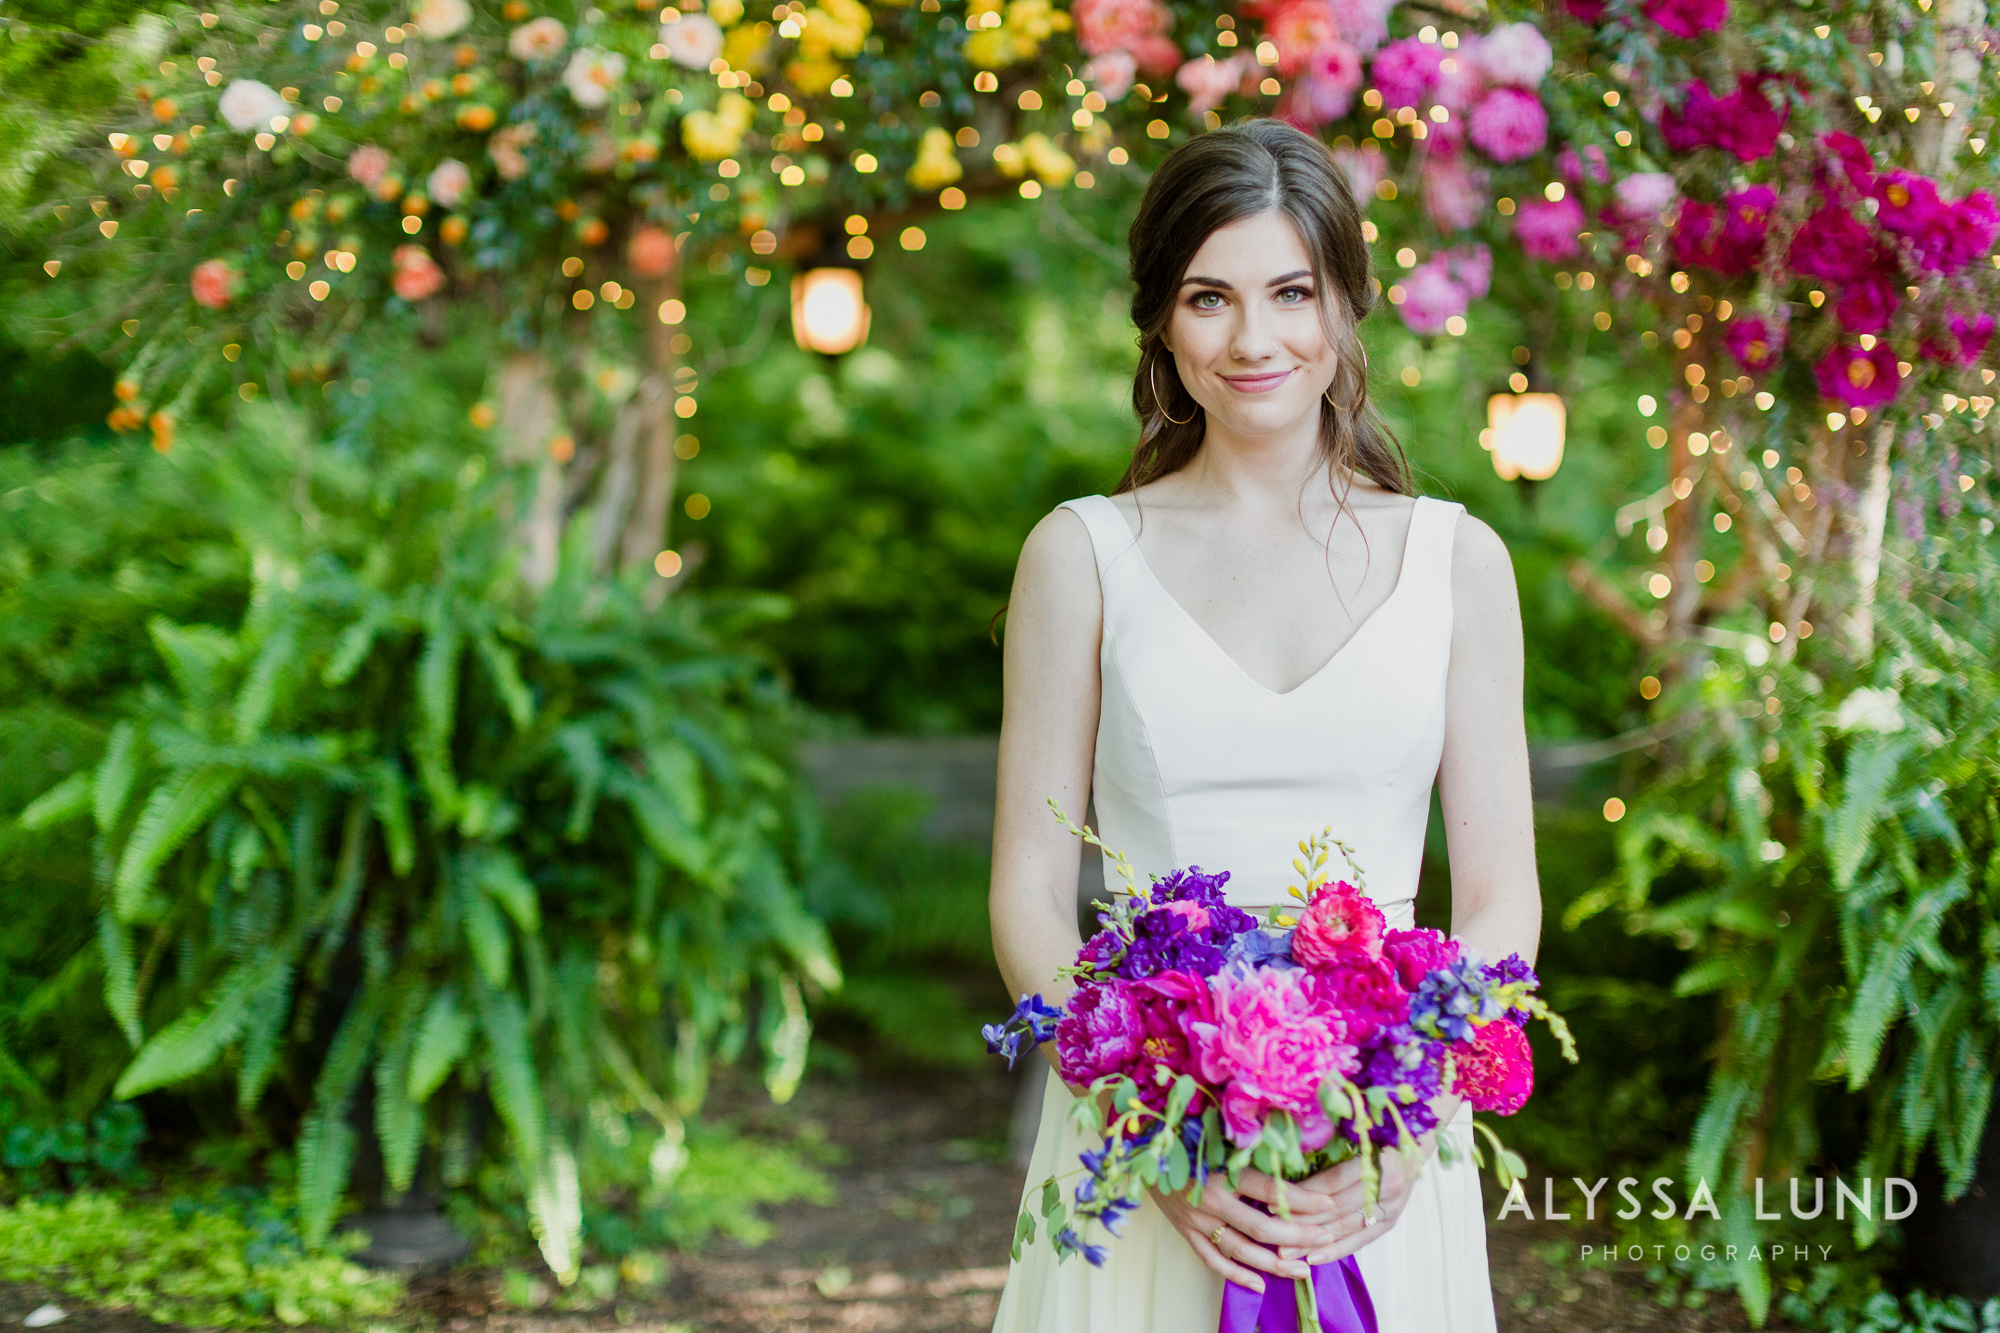 Queer wedding photography inspiration by Alyssa Lund Photography-25.jpg